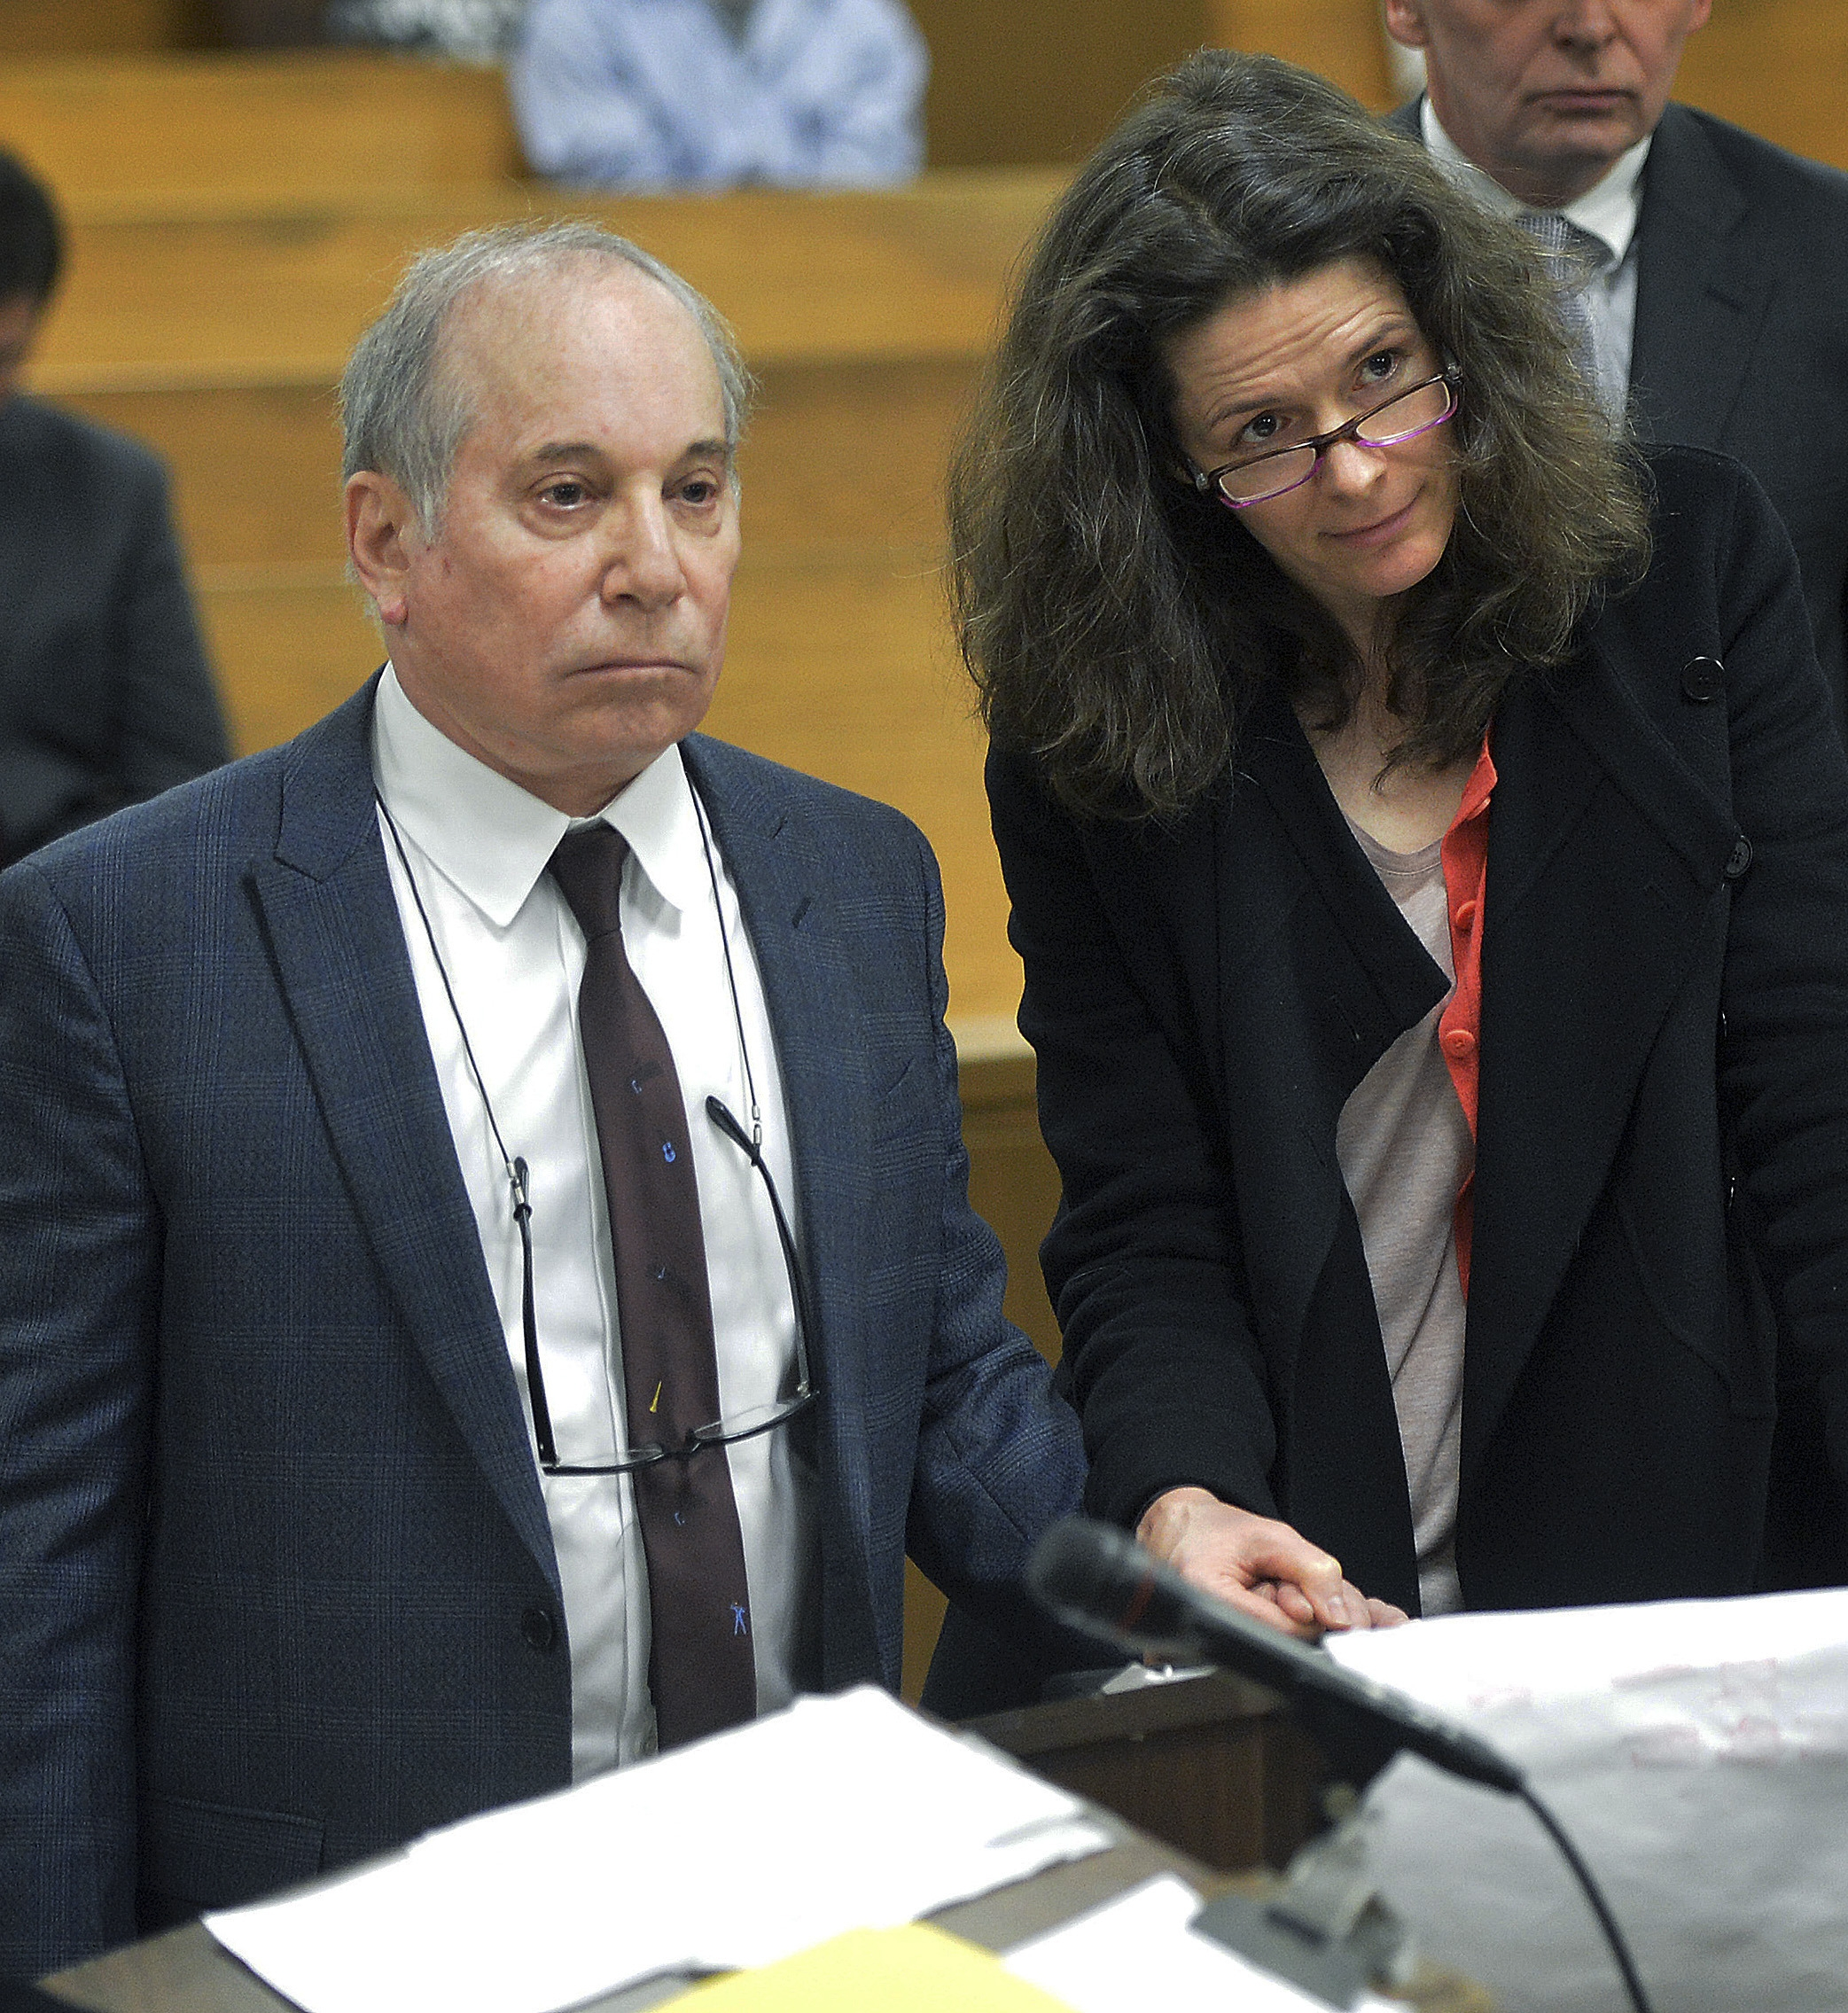 Singer Paul Simon, left, holds hands with his wife, Edie Brickell, in court after the couple were arrested for disorderly conduct after a fight at their home in Connecticut.